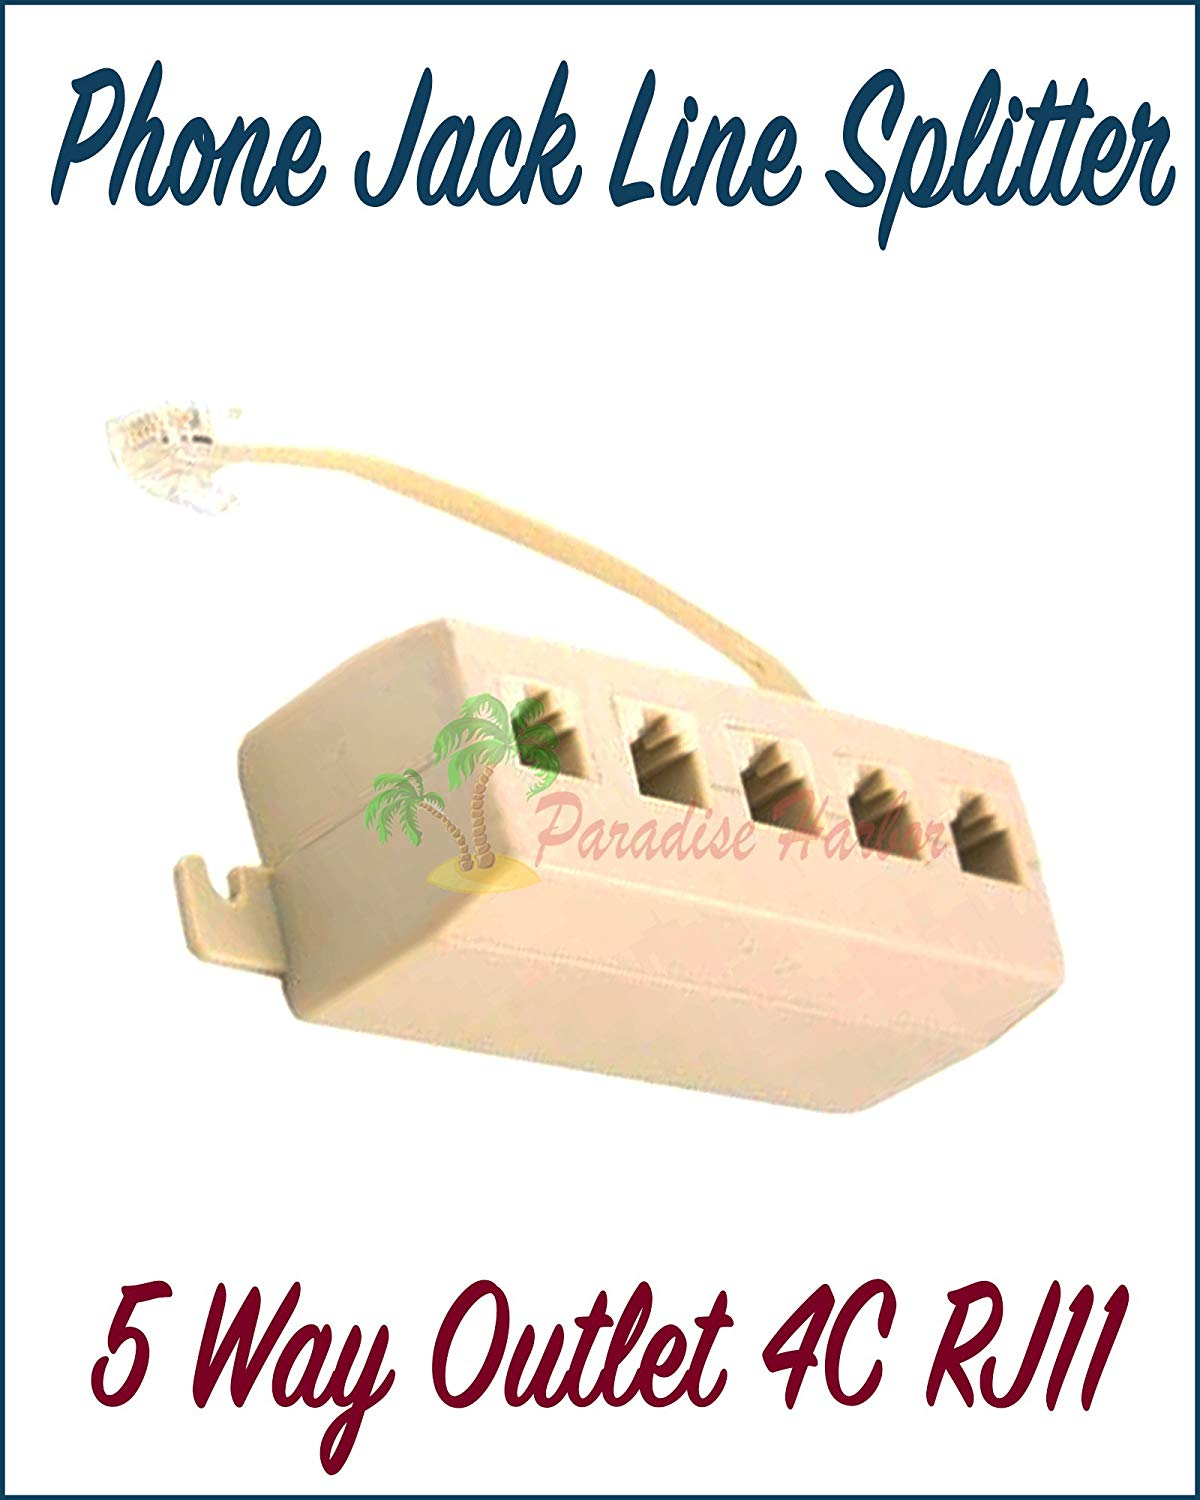 Cheap Phone Jack Outlet Find Deals On Line At Biscuit Wiring Get Quotations Paradisse Harbor 5 Way 4c Rj11 Telephone Modular Splitter Adapter Beige